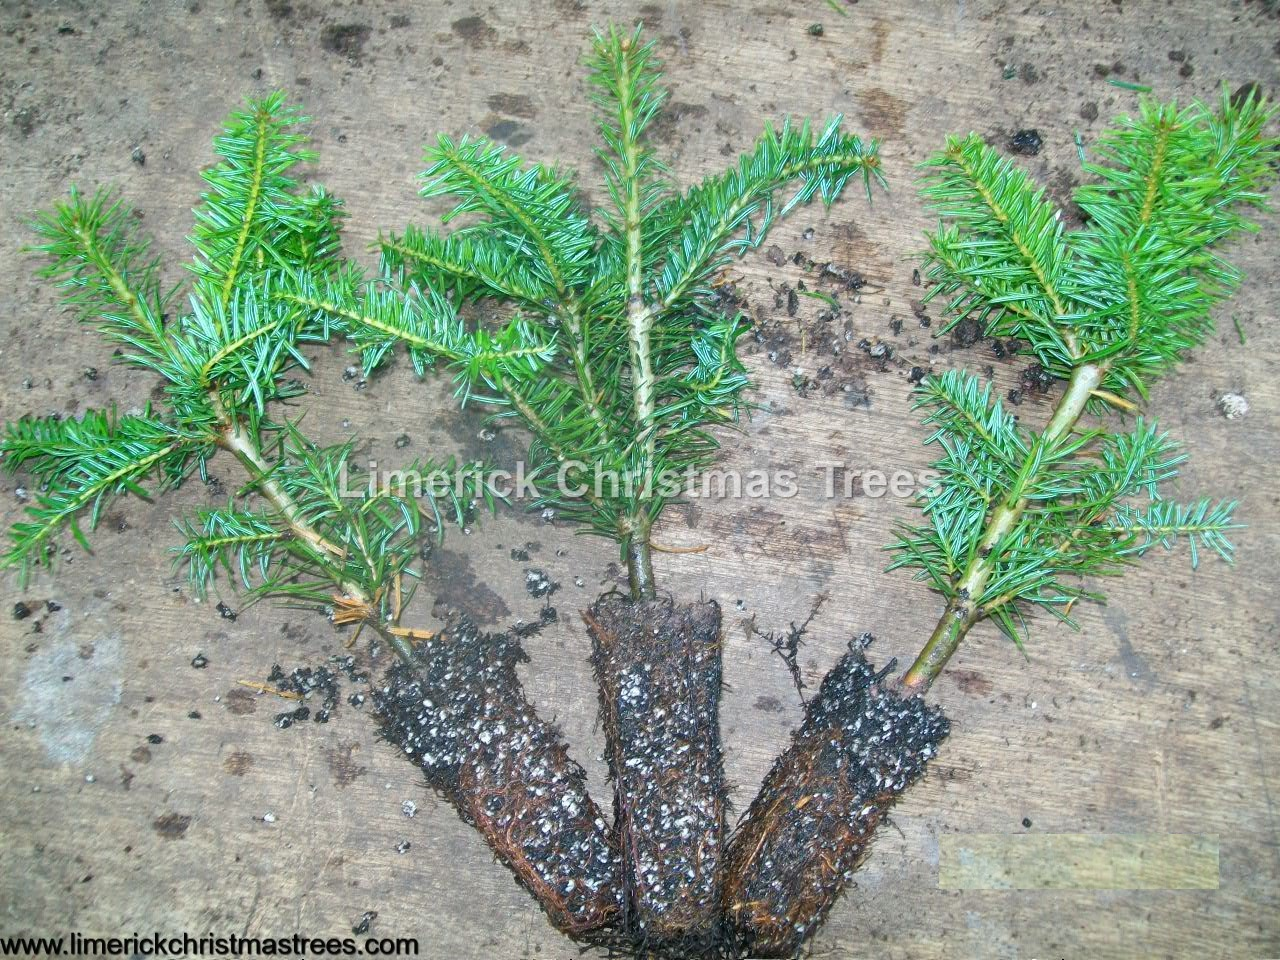 Christmas Tree Growers Facts